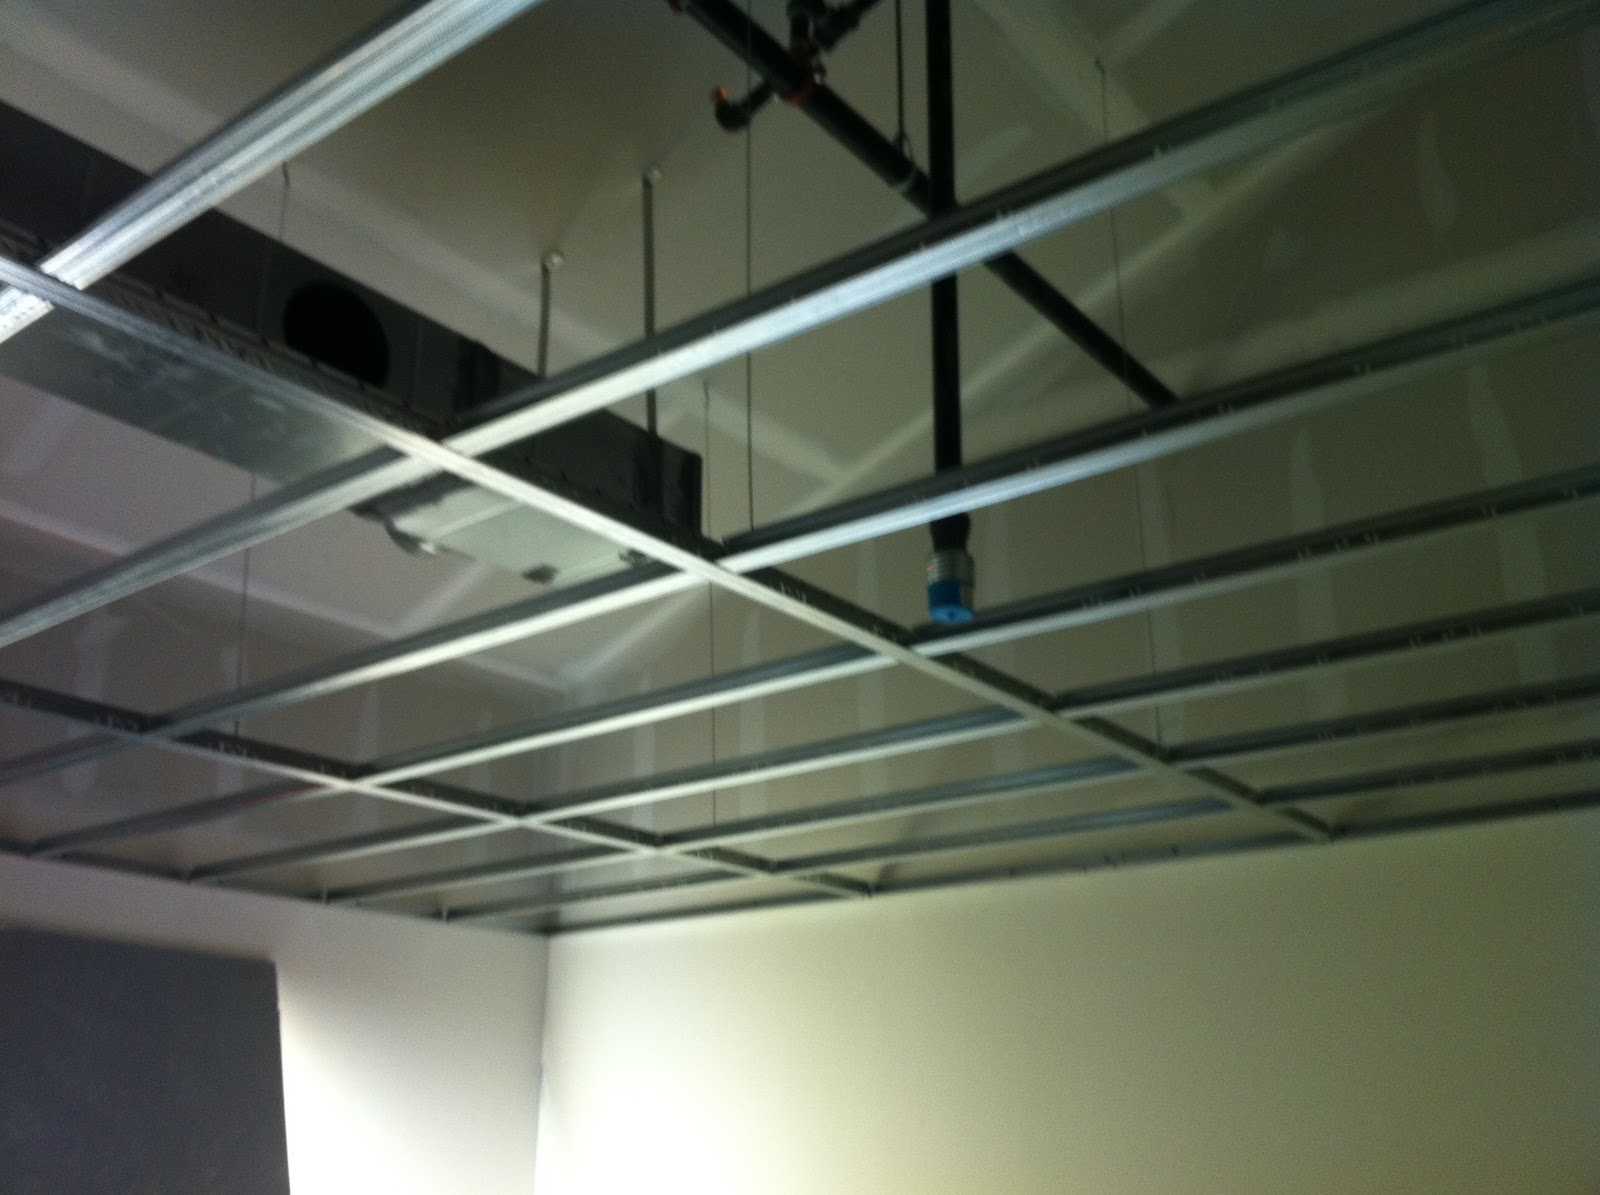 Charlestown LDS: Ceiling framing and ceiling tile